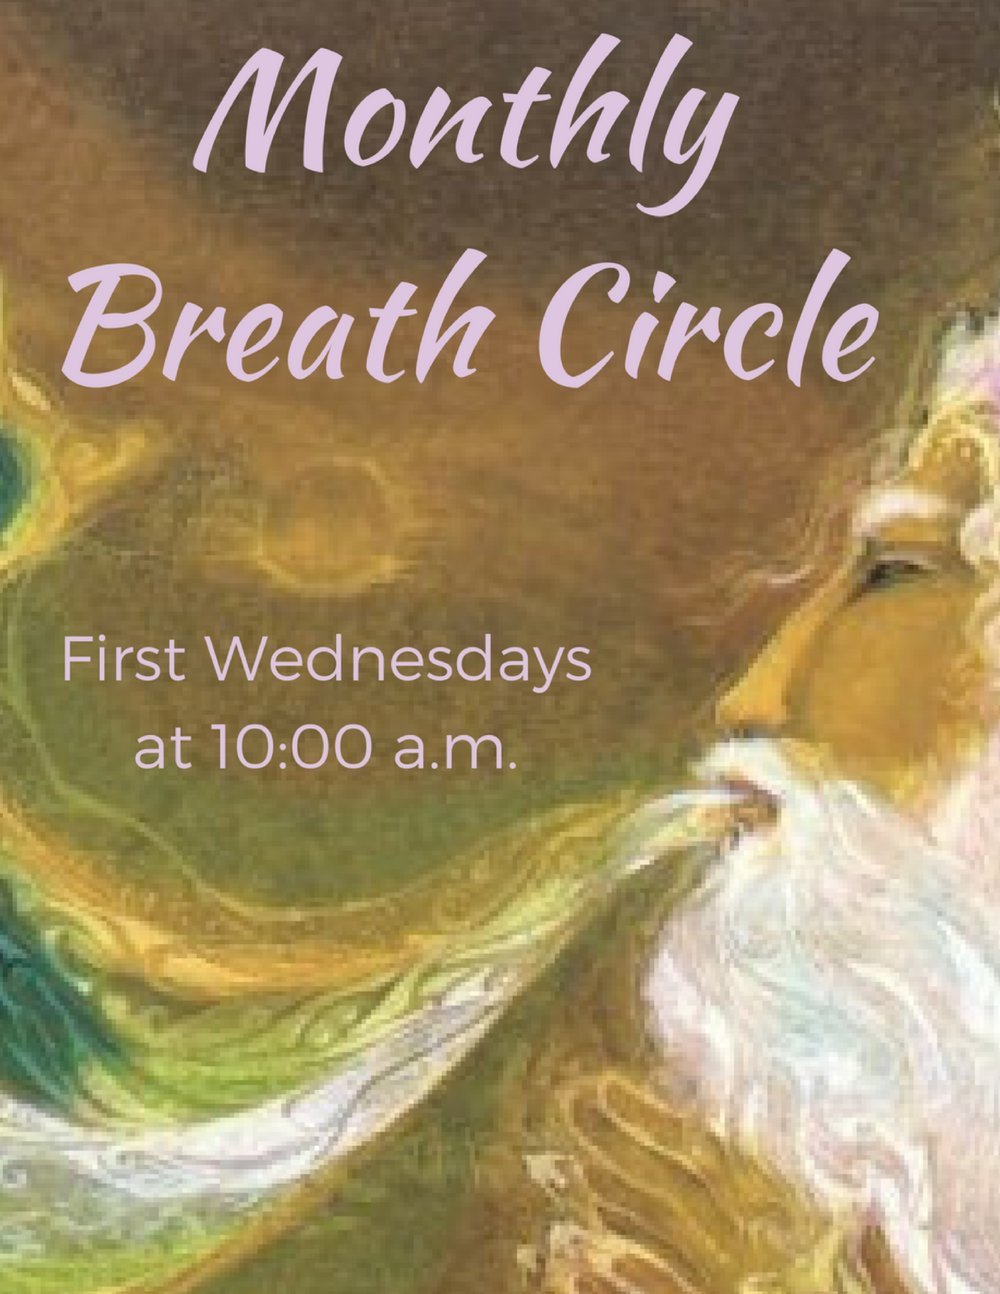 ITL Monthly Breath Circle.jpg